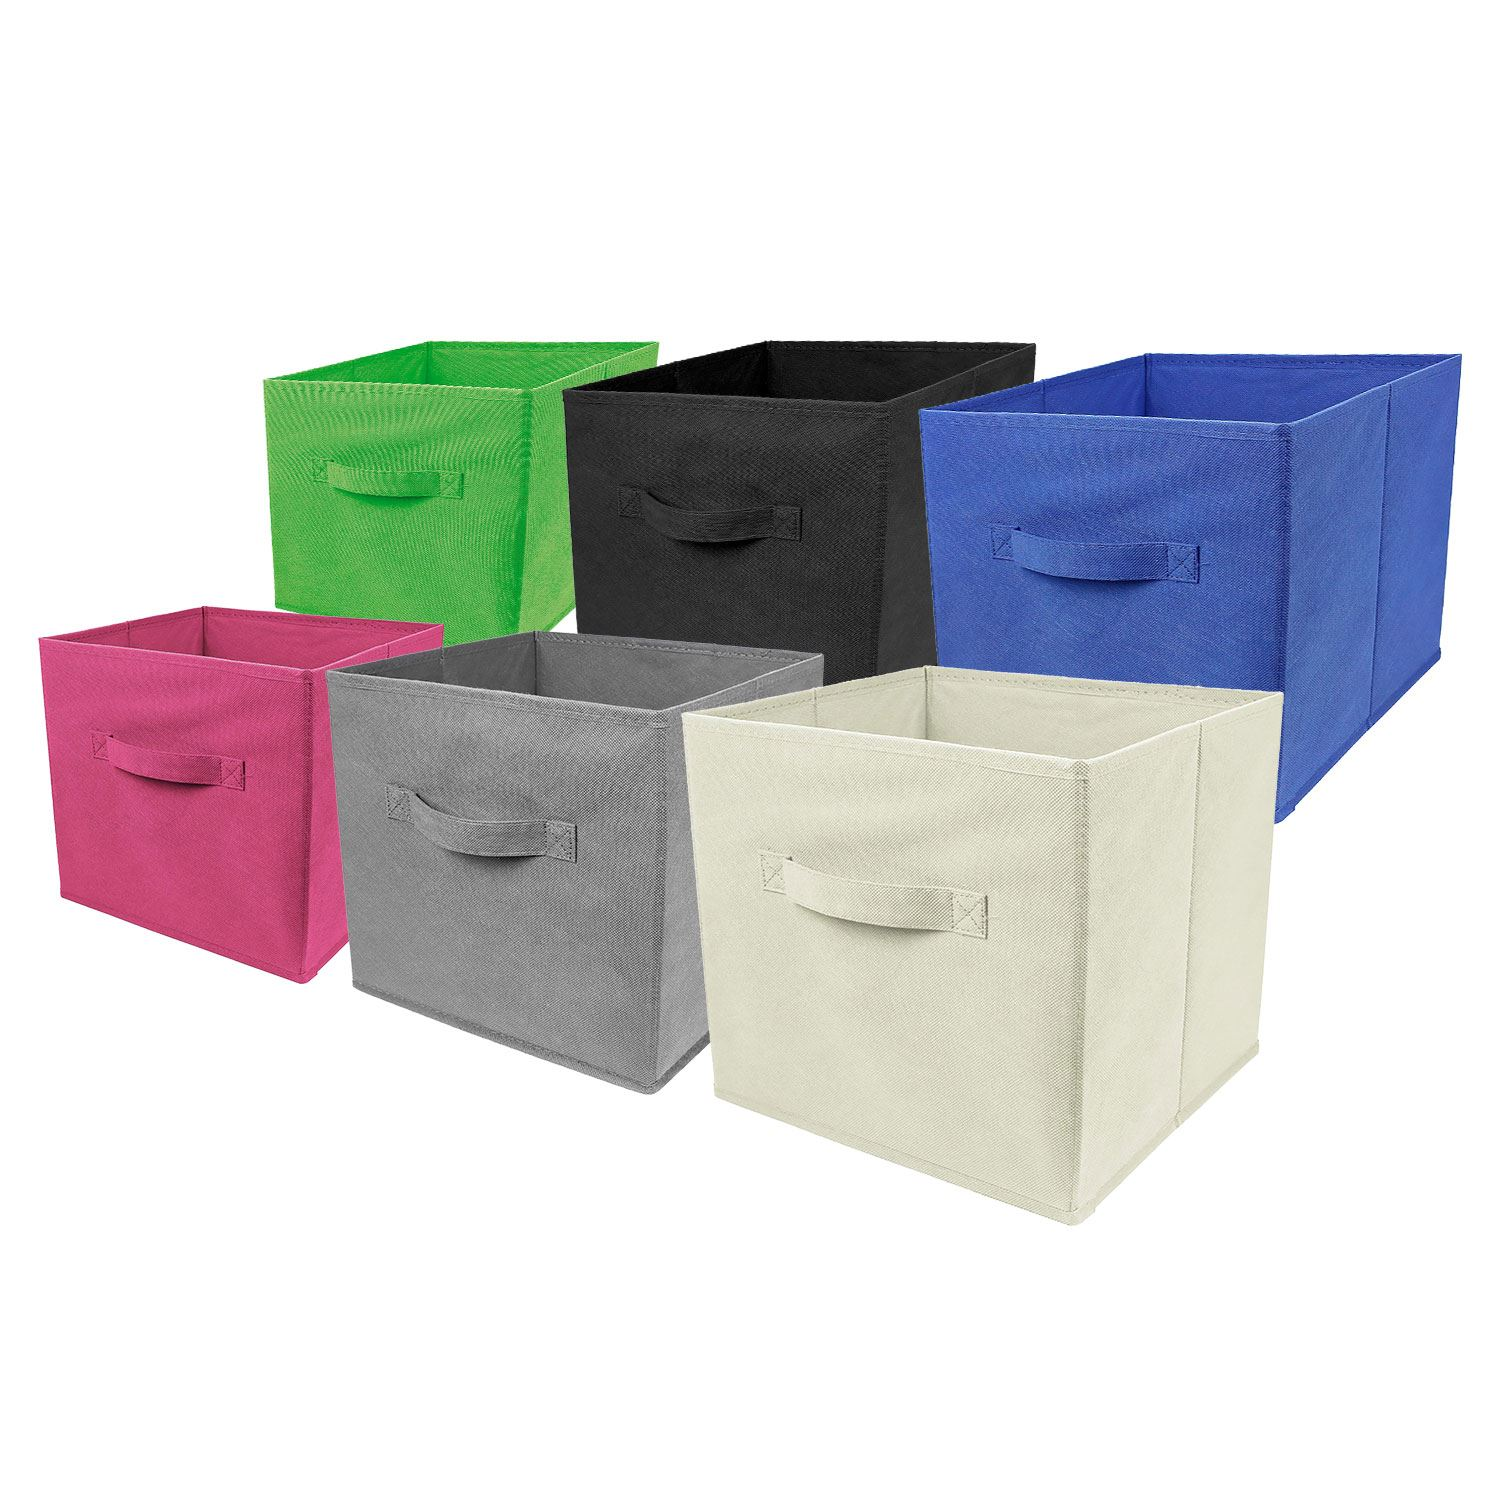 2 Pack Foldable Storage Cubes. Image result for mobile responsive images  sc 1 st  eBay & 2 x Large Foldable Square Canvas Storage Box Collapsible Fabric ...